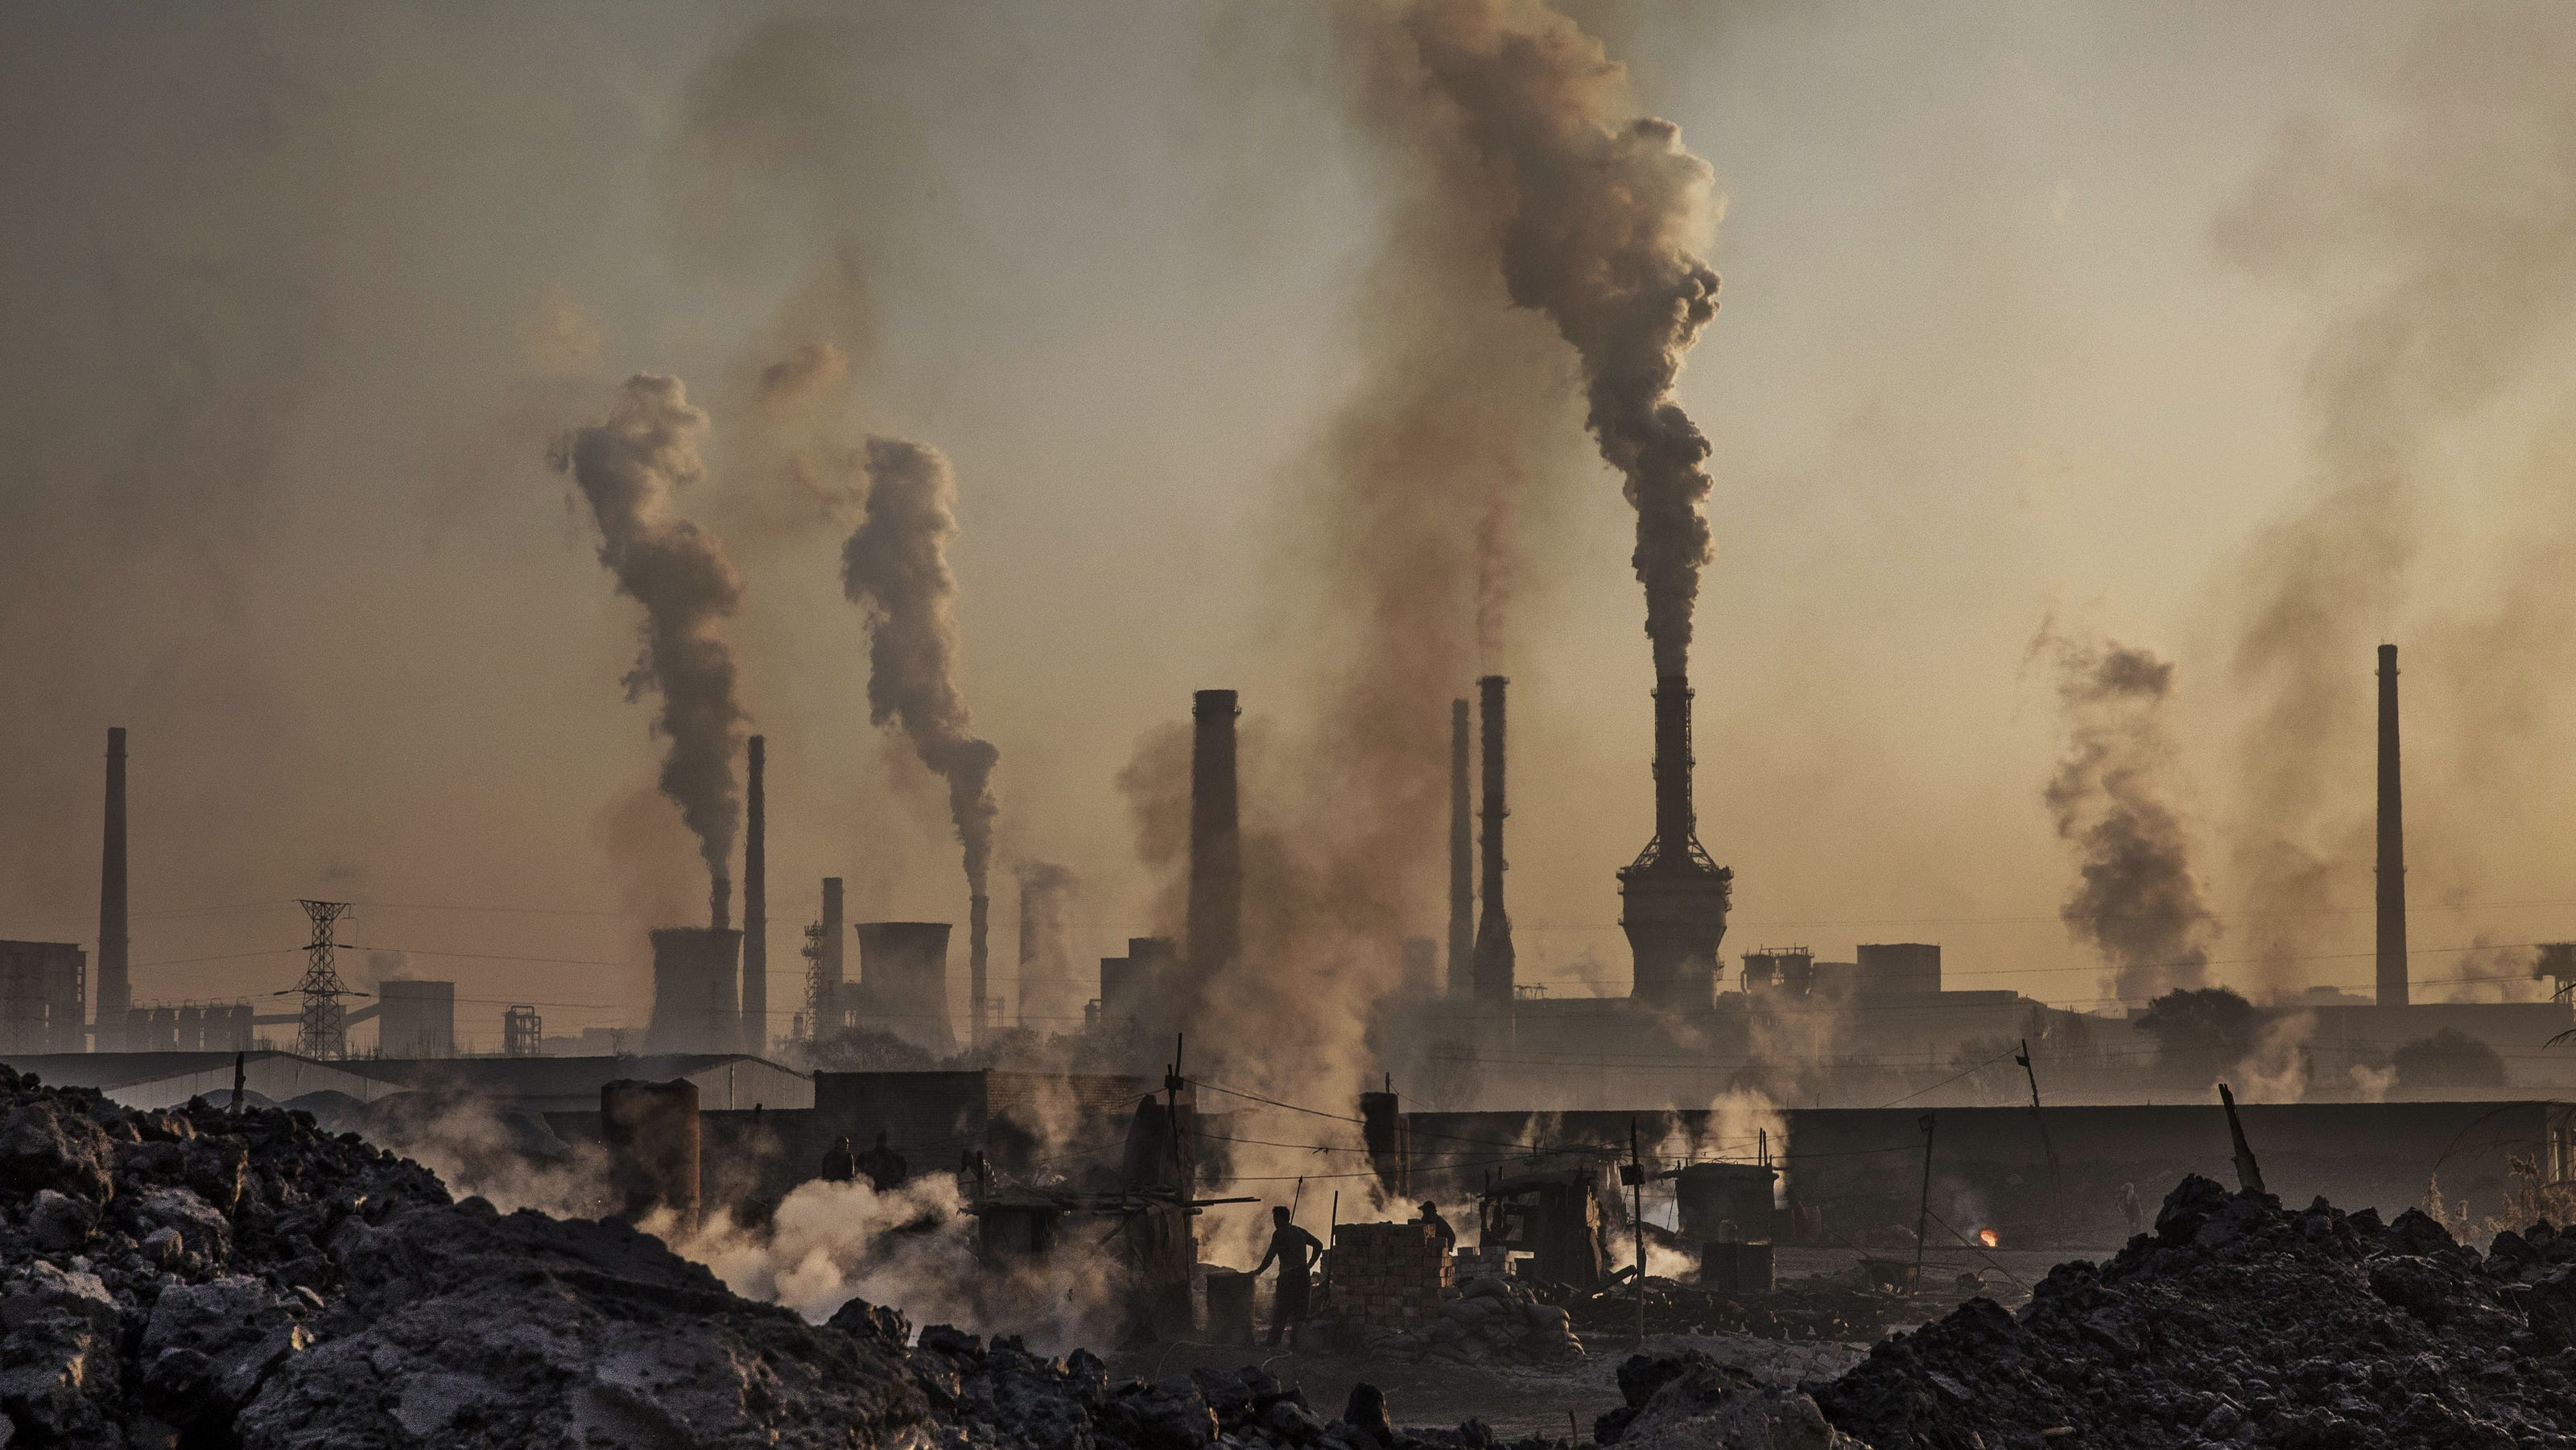 Highest in more than 4 million years: Earth's carbon dioxide levels soar to record high despite pandemic